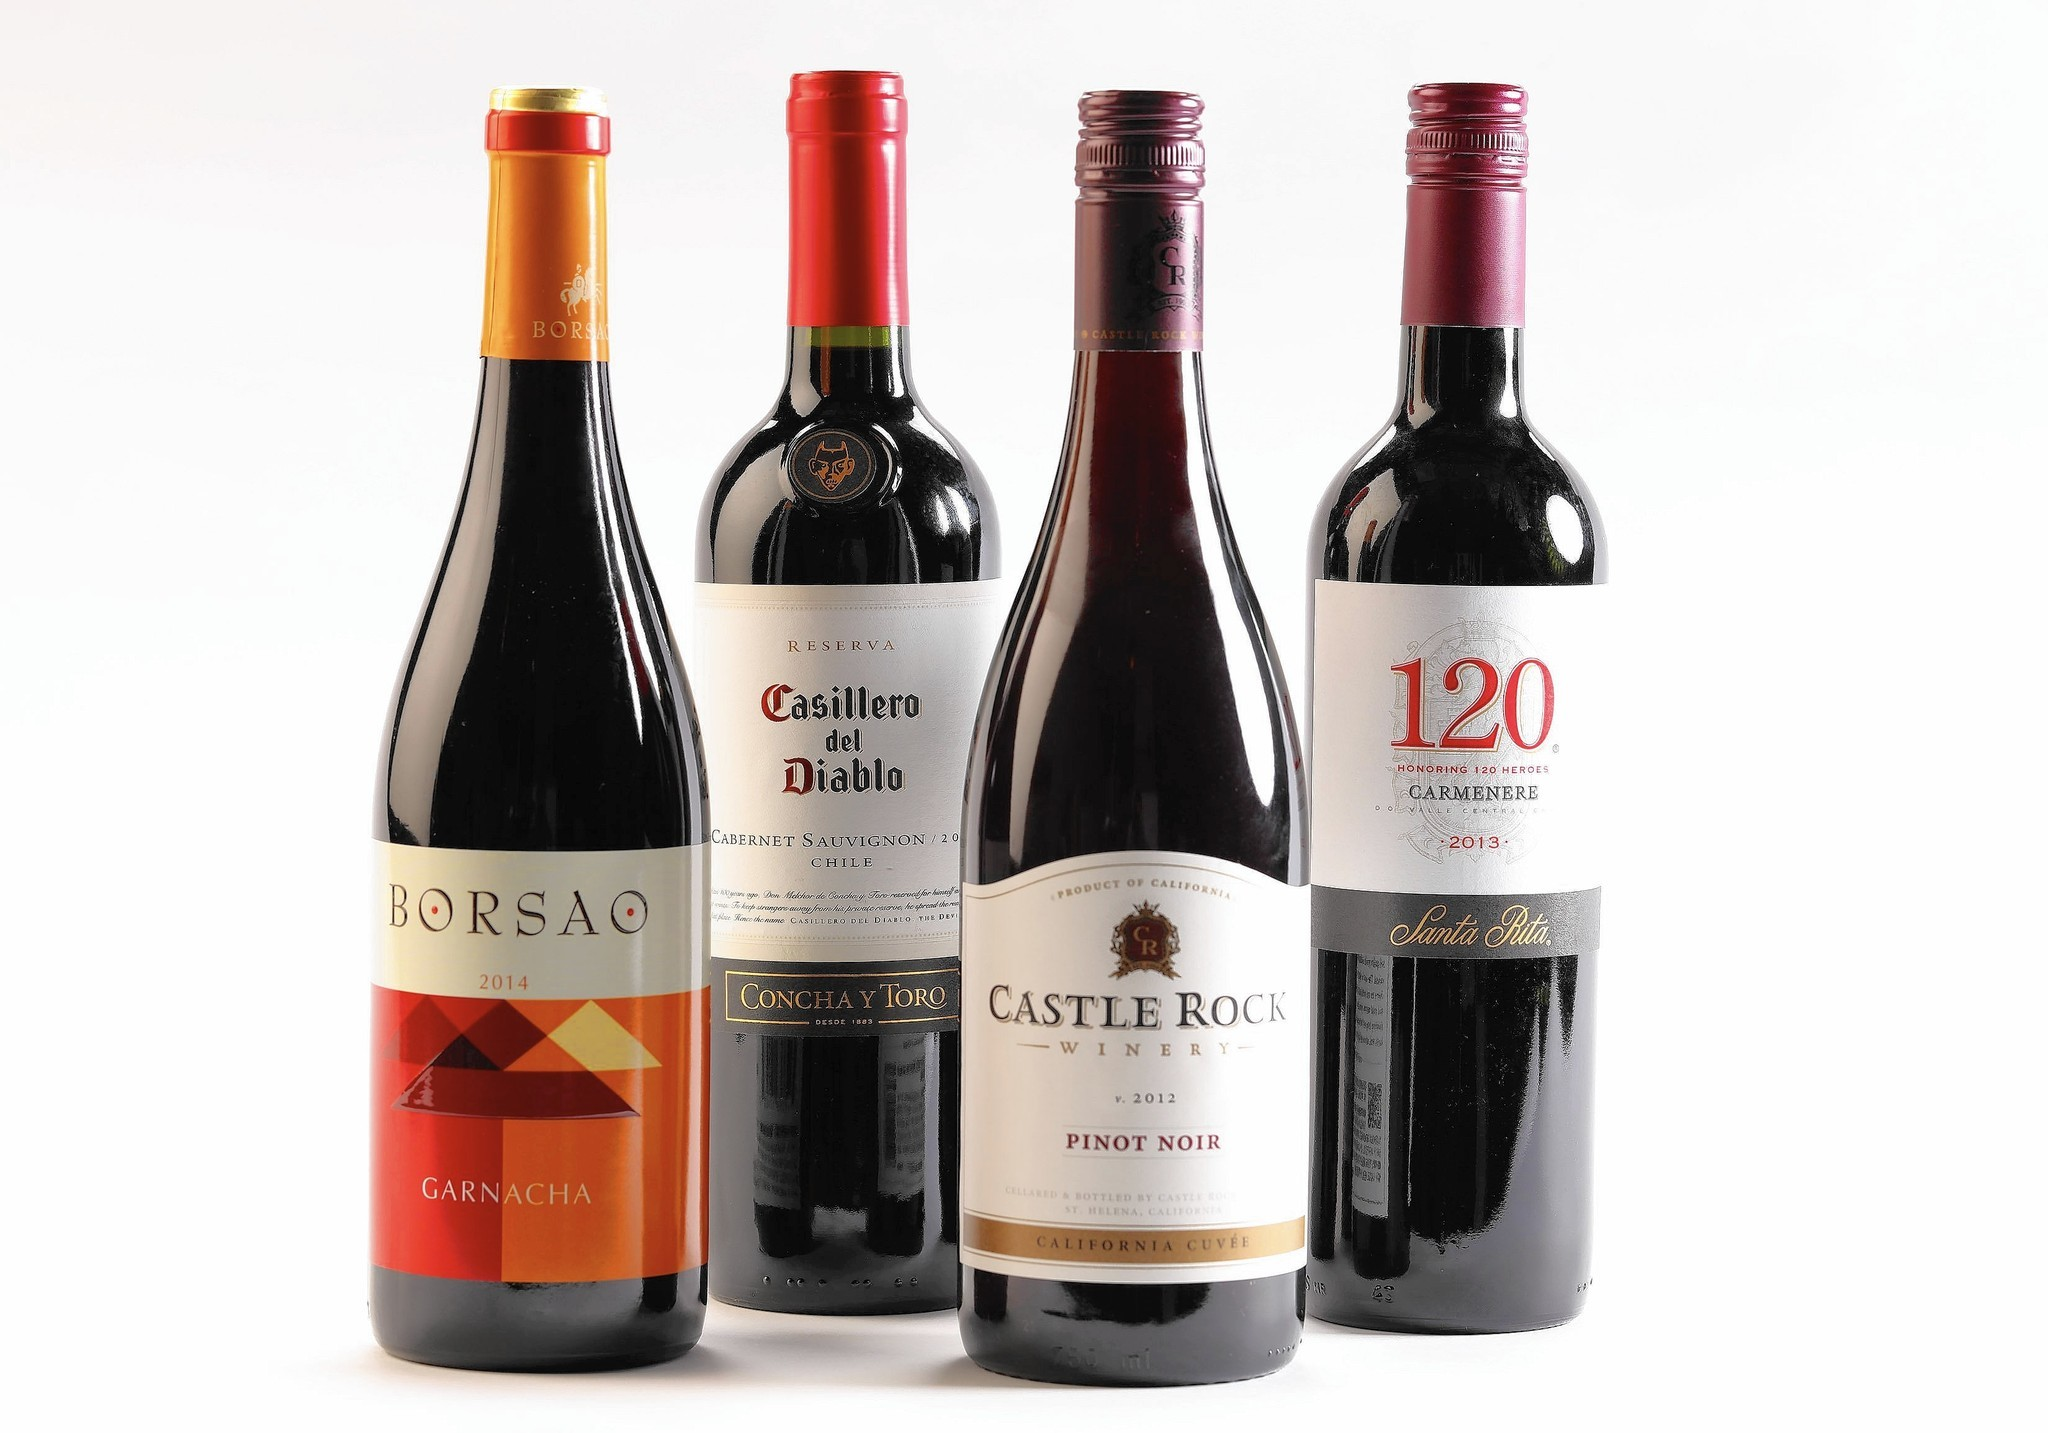 Buying red wine on a budget: Decent bottles for $10 or less